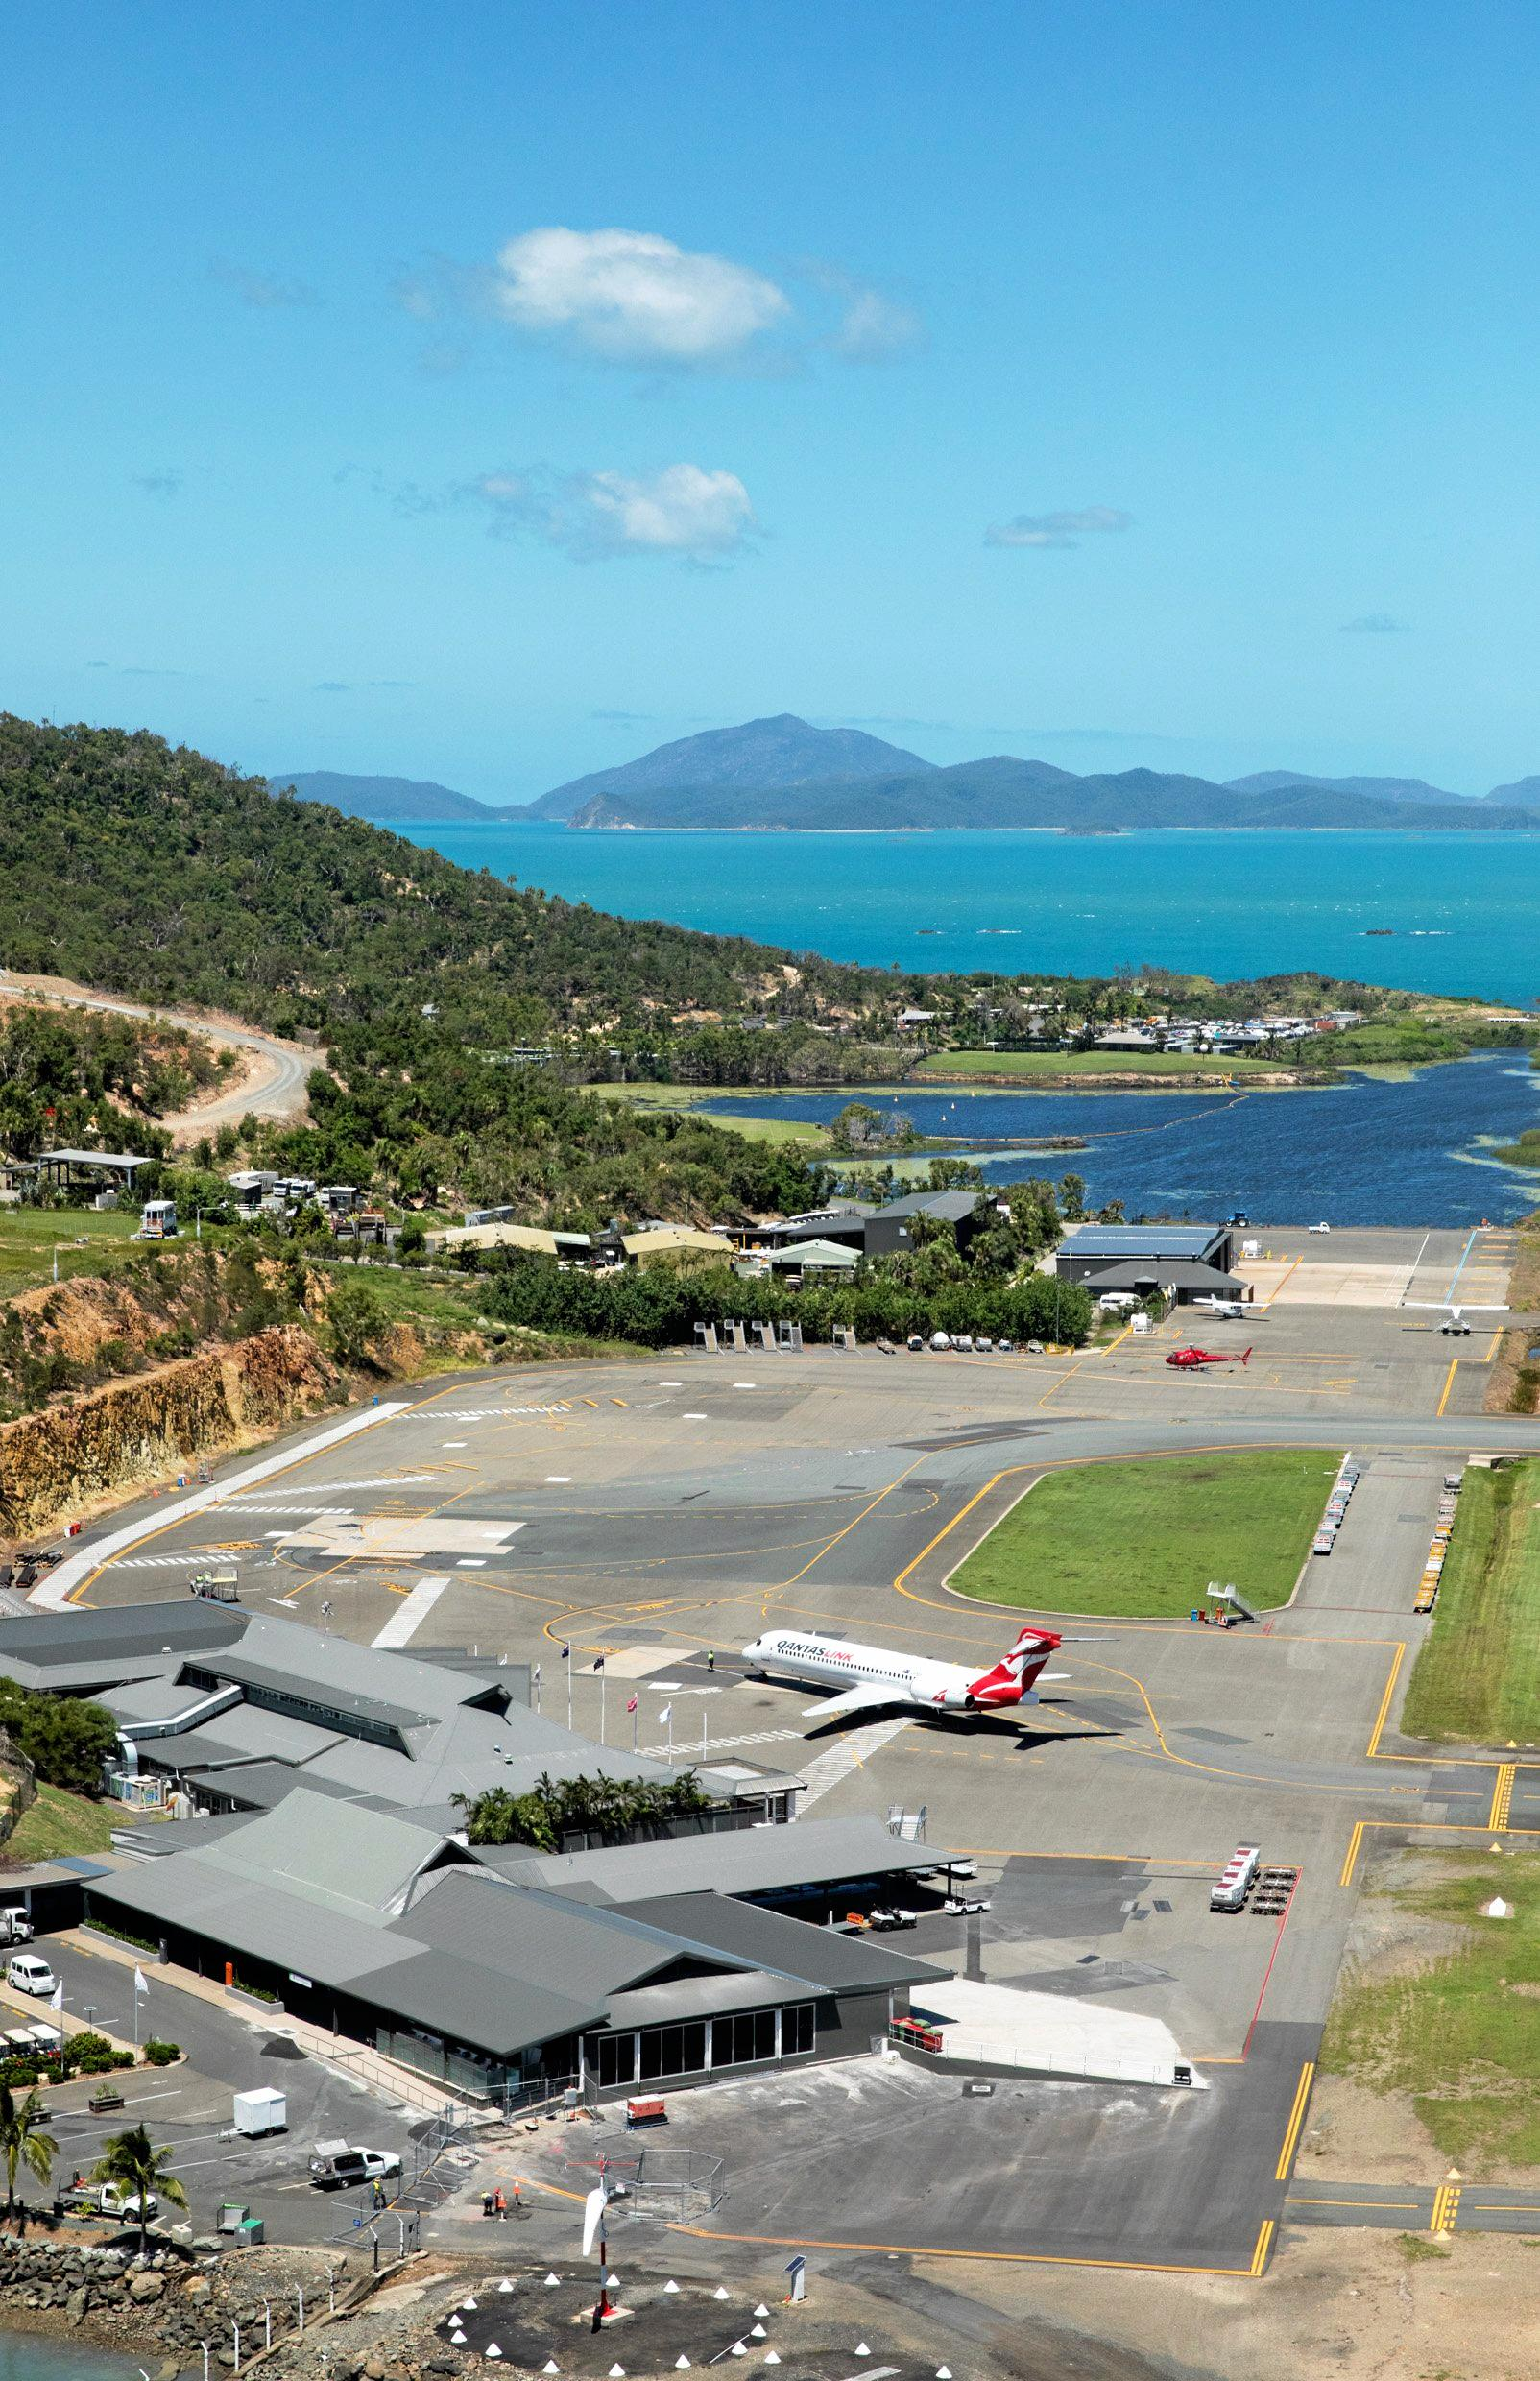 Qantas has added more seats to Hamilton Island Airport for travellers between July and September.